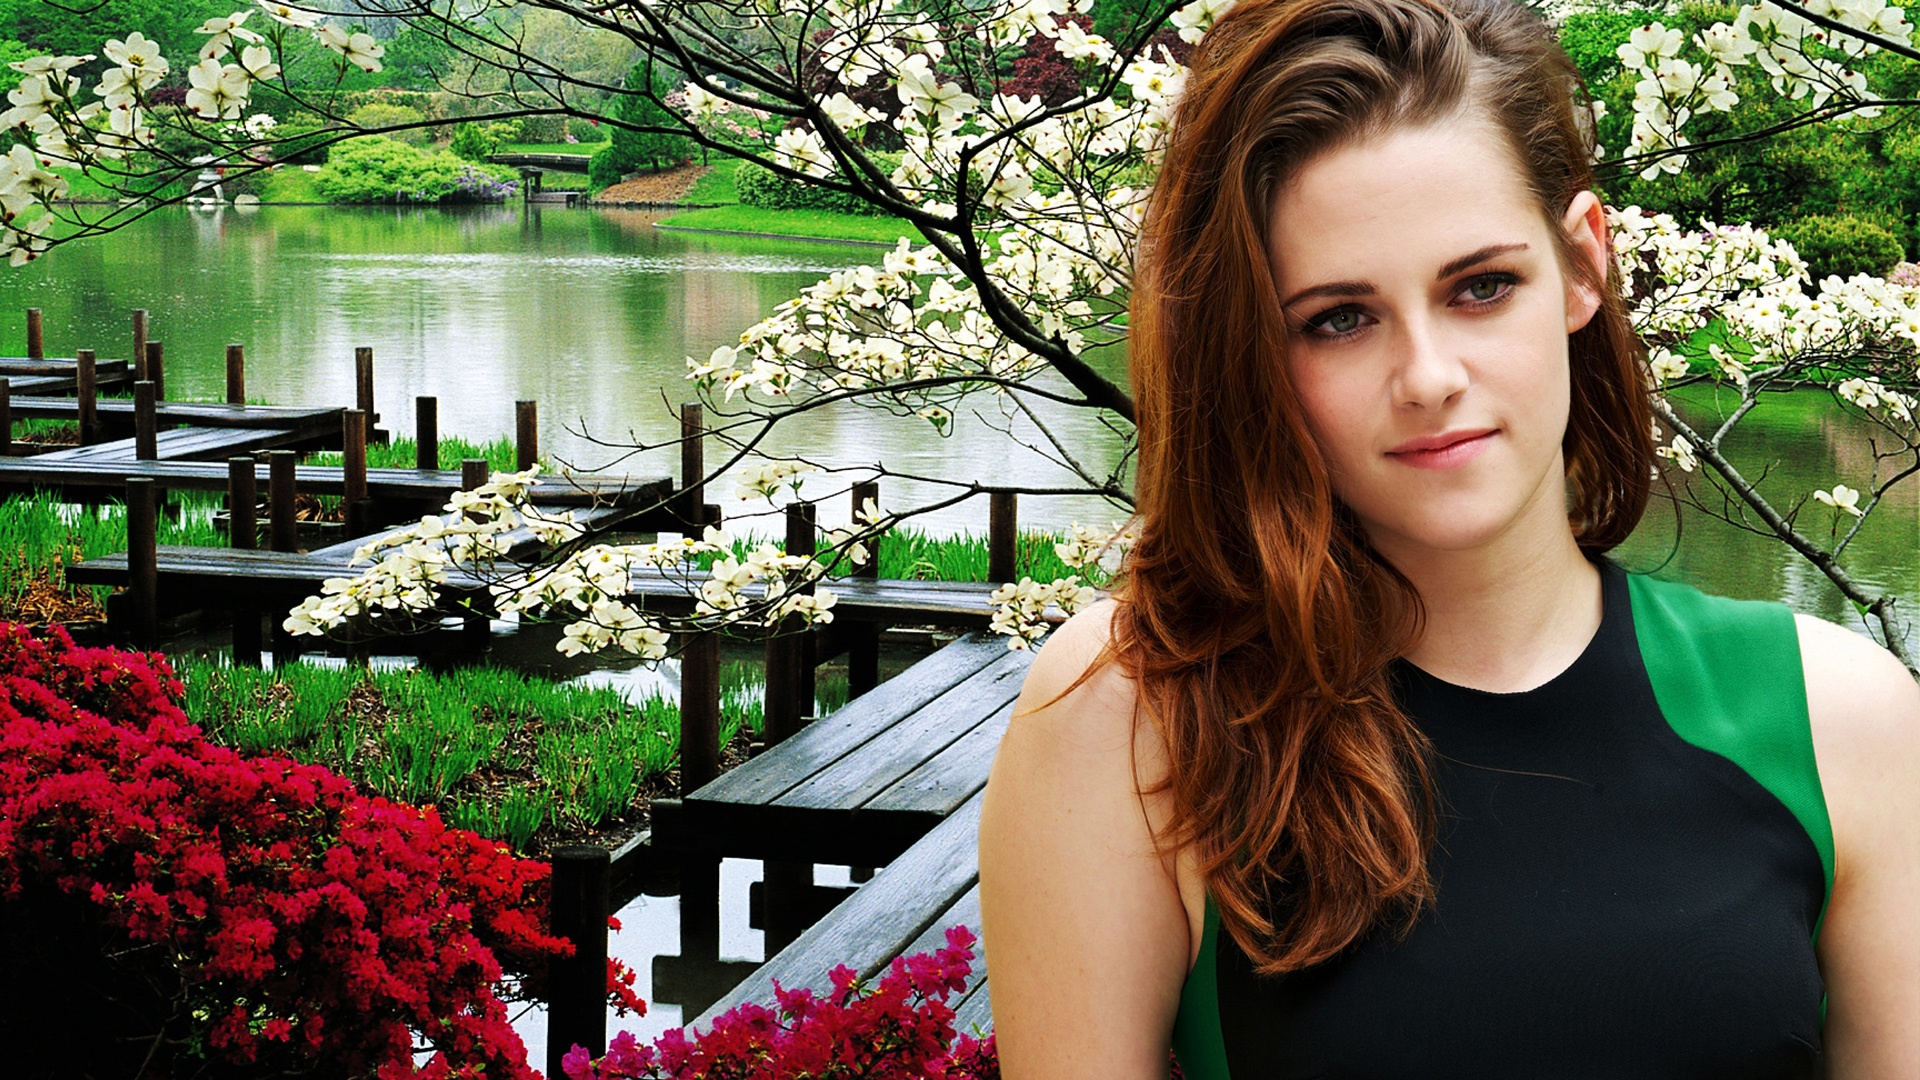 kristen stewart wallpapers hd A20